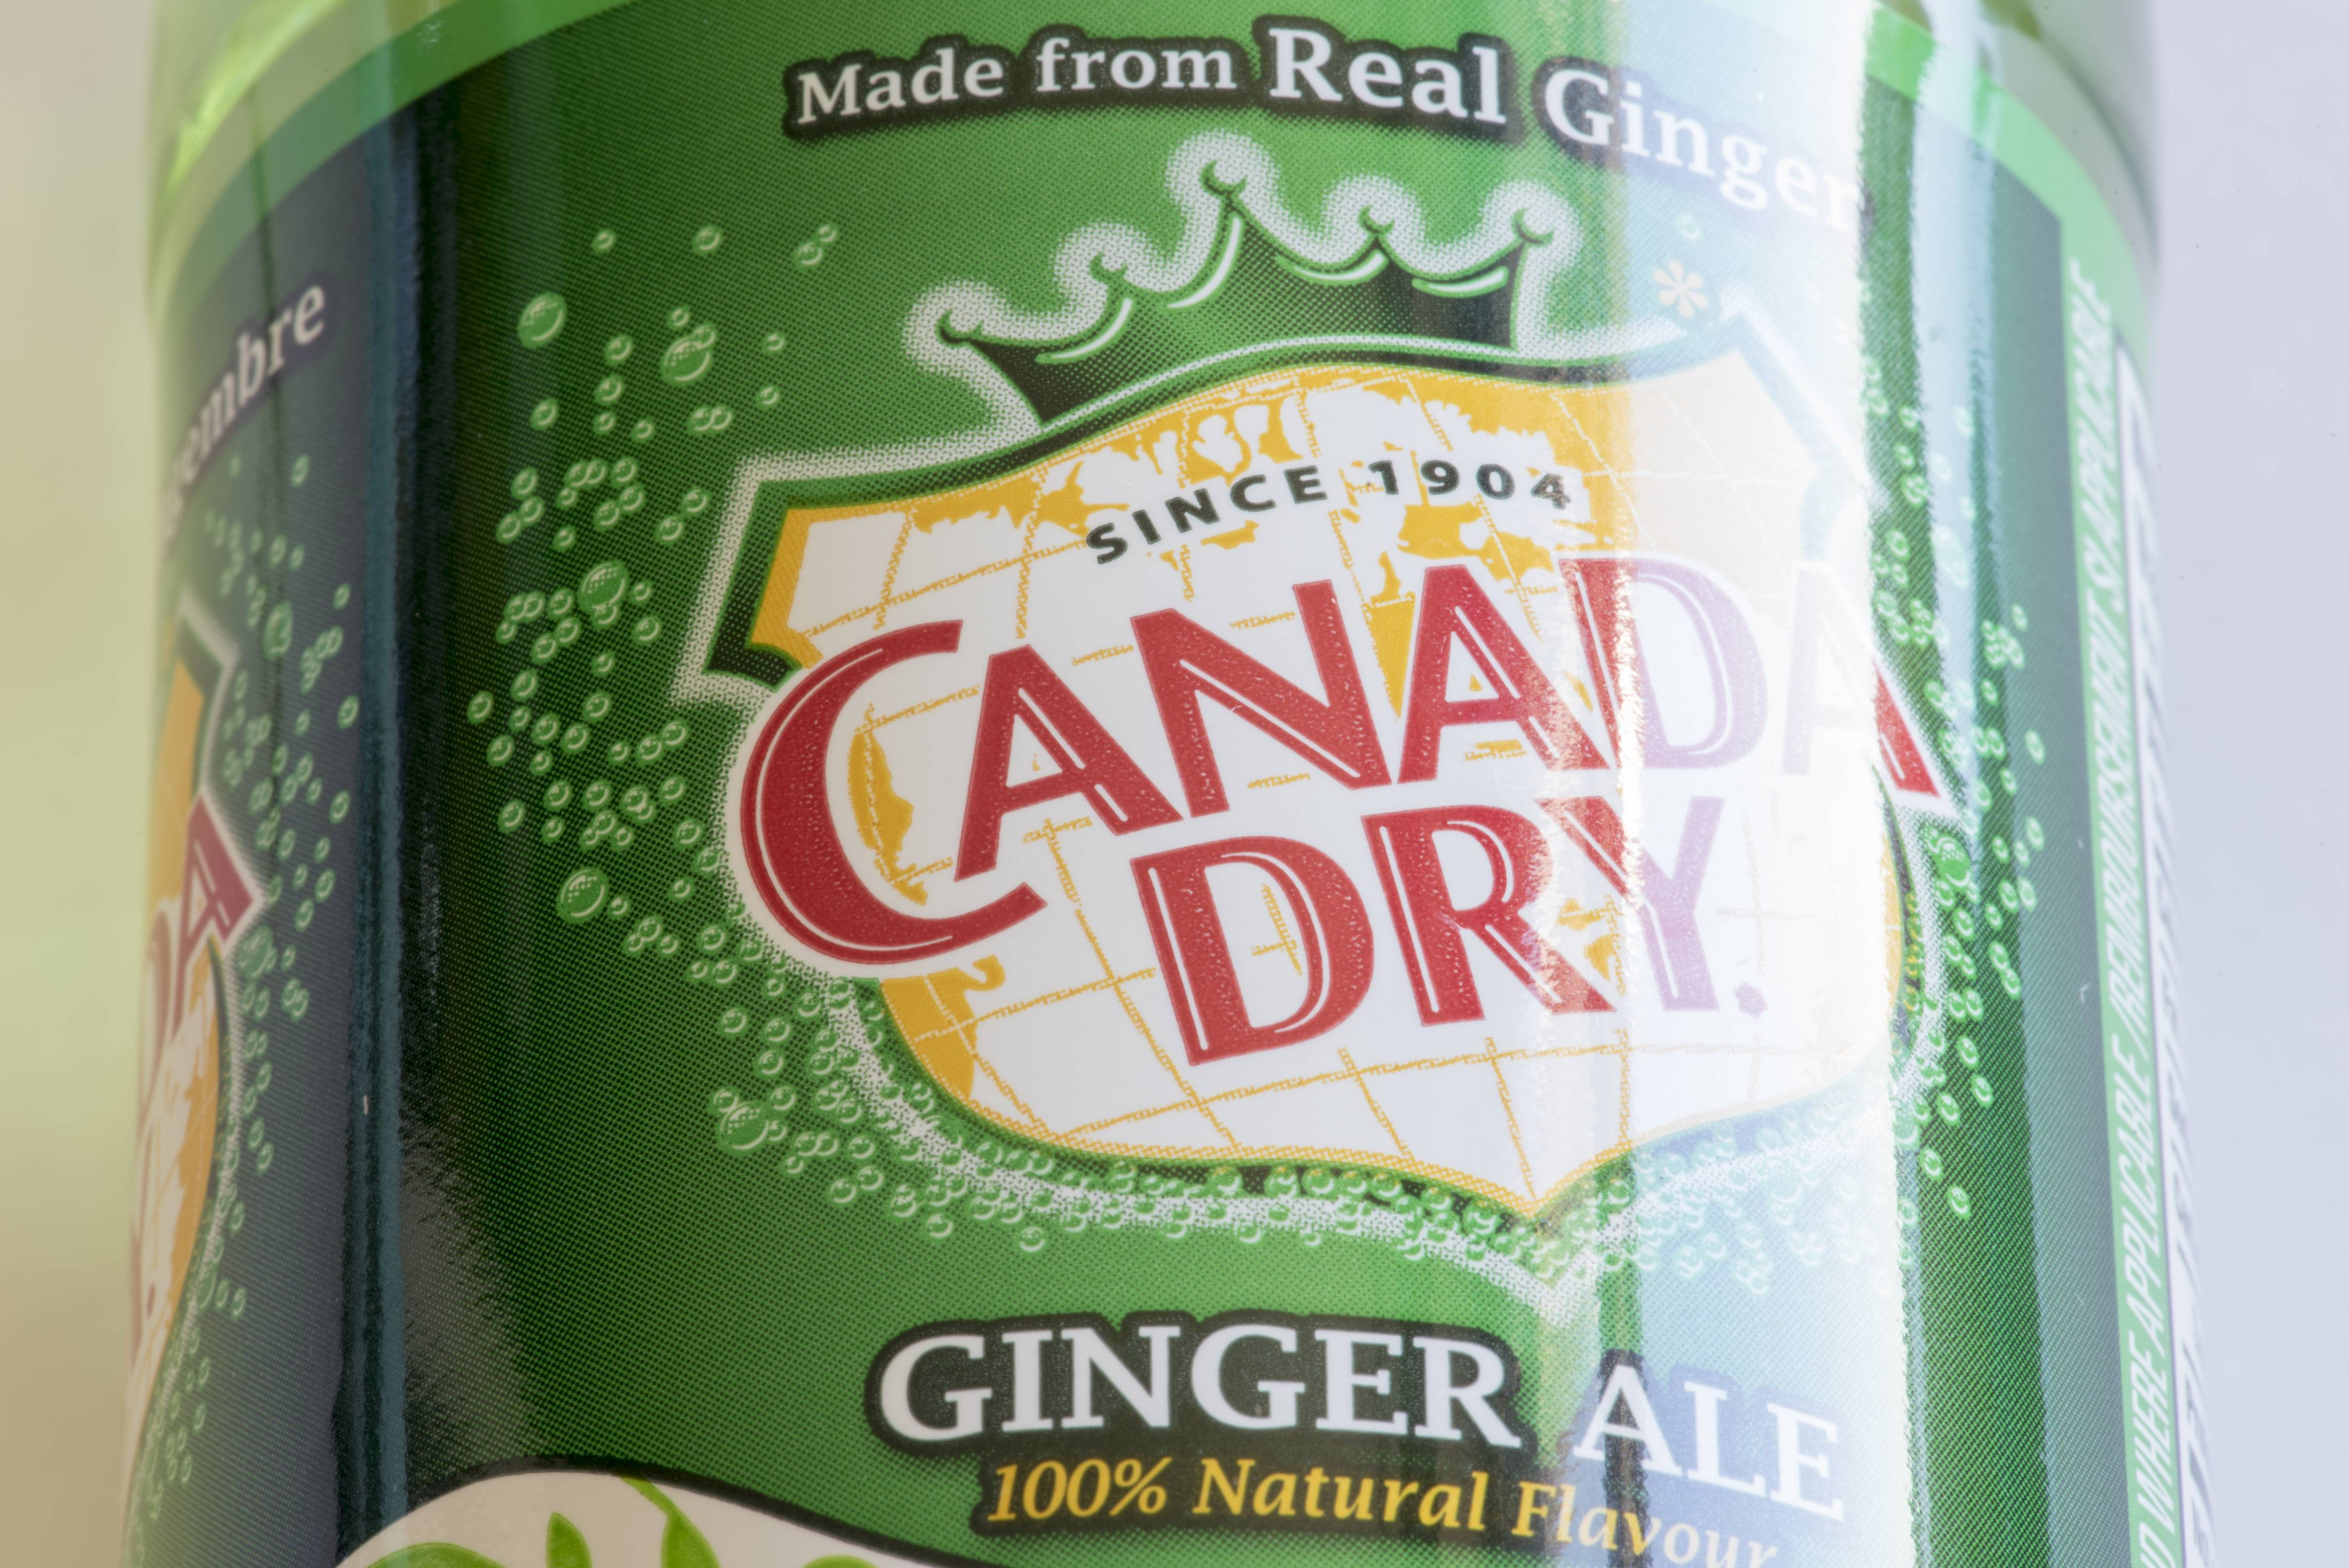 Canada Dry Ginger Ale can close-up. Canada Dry is a brand of